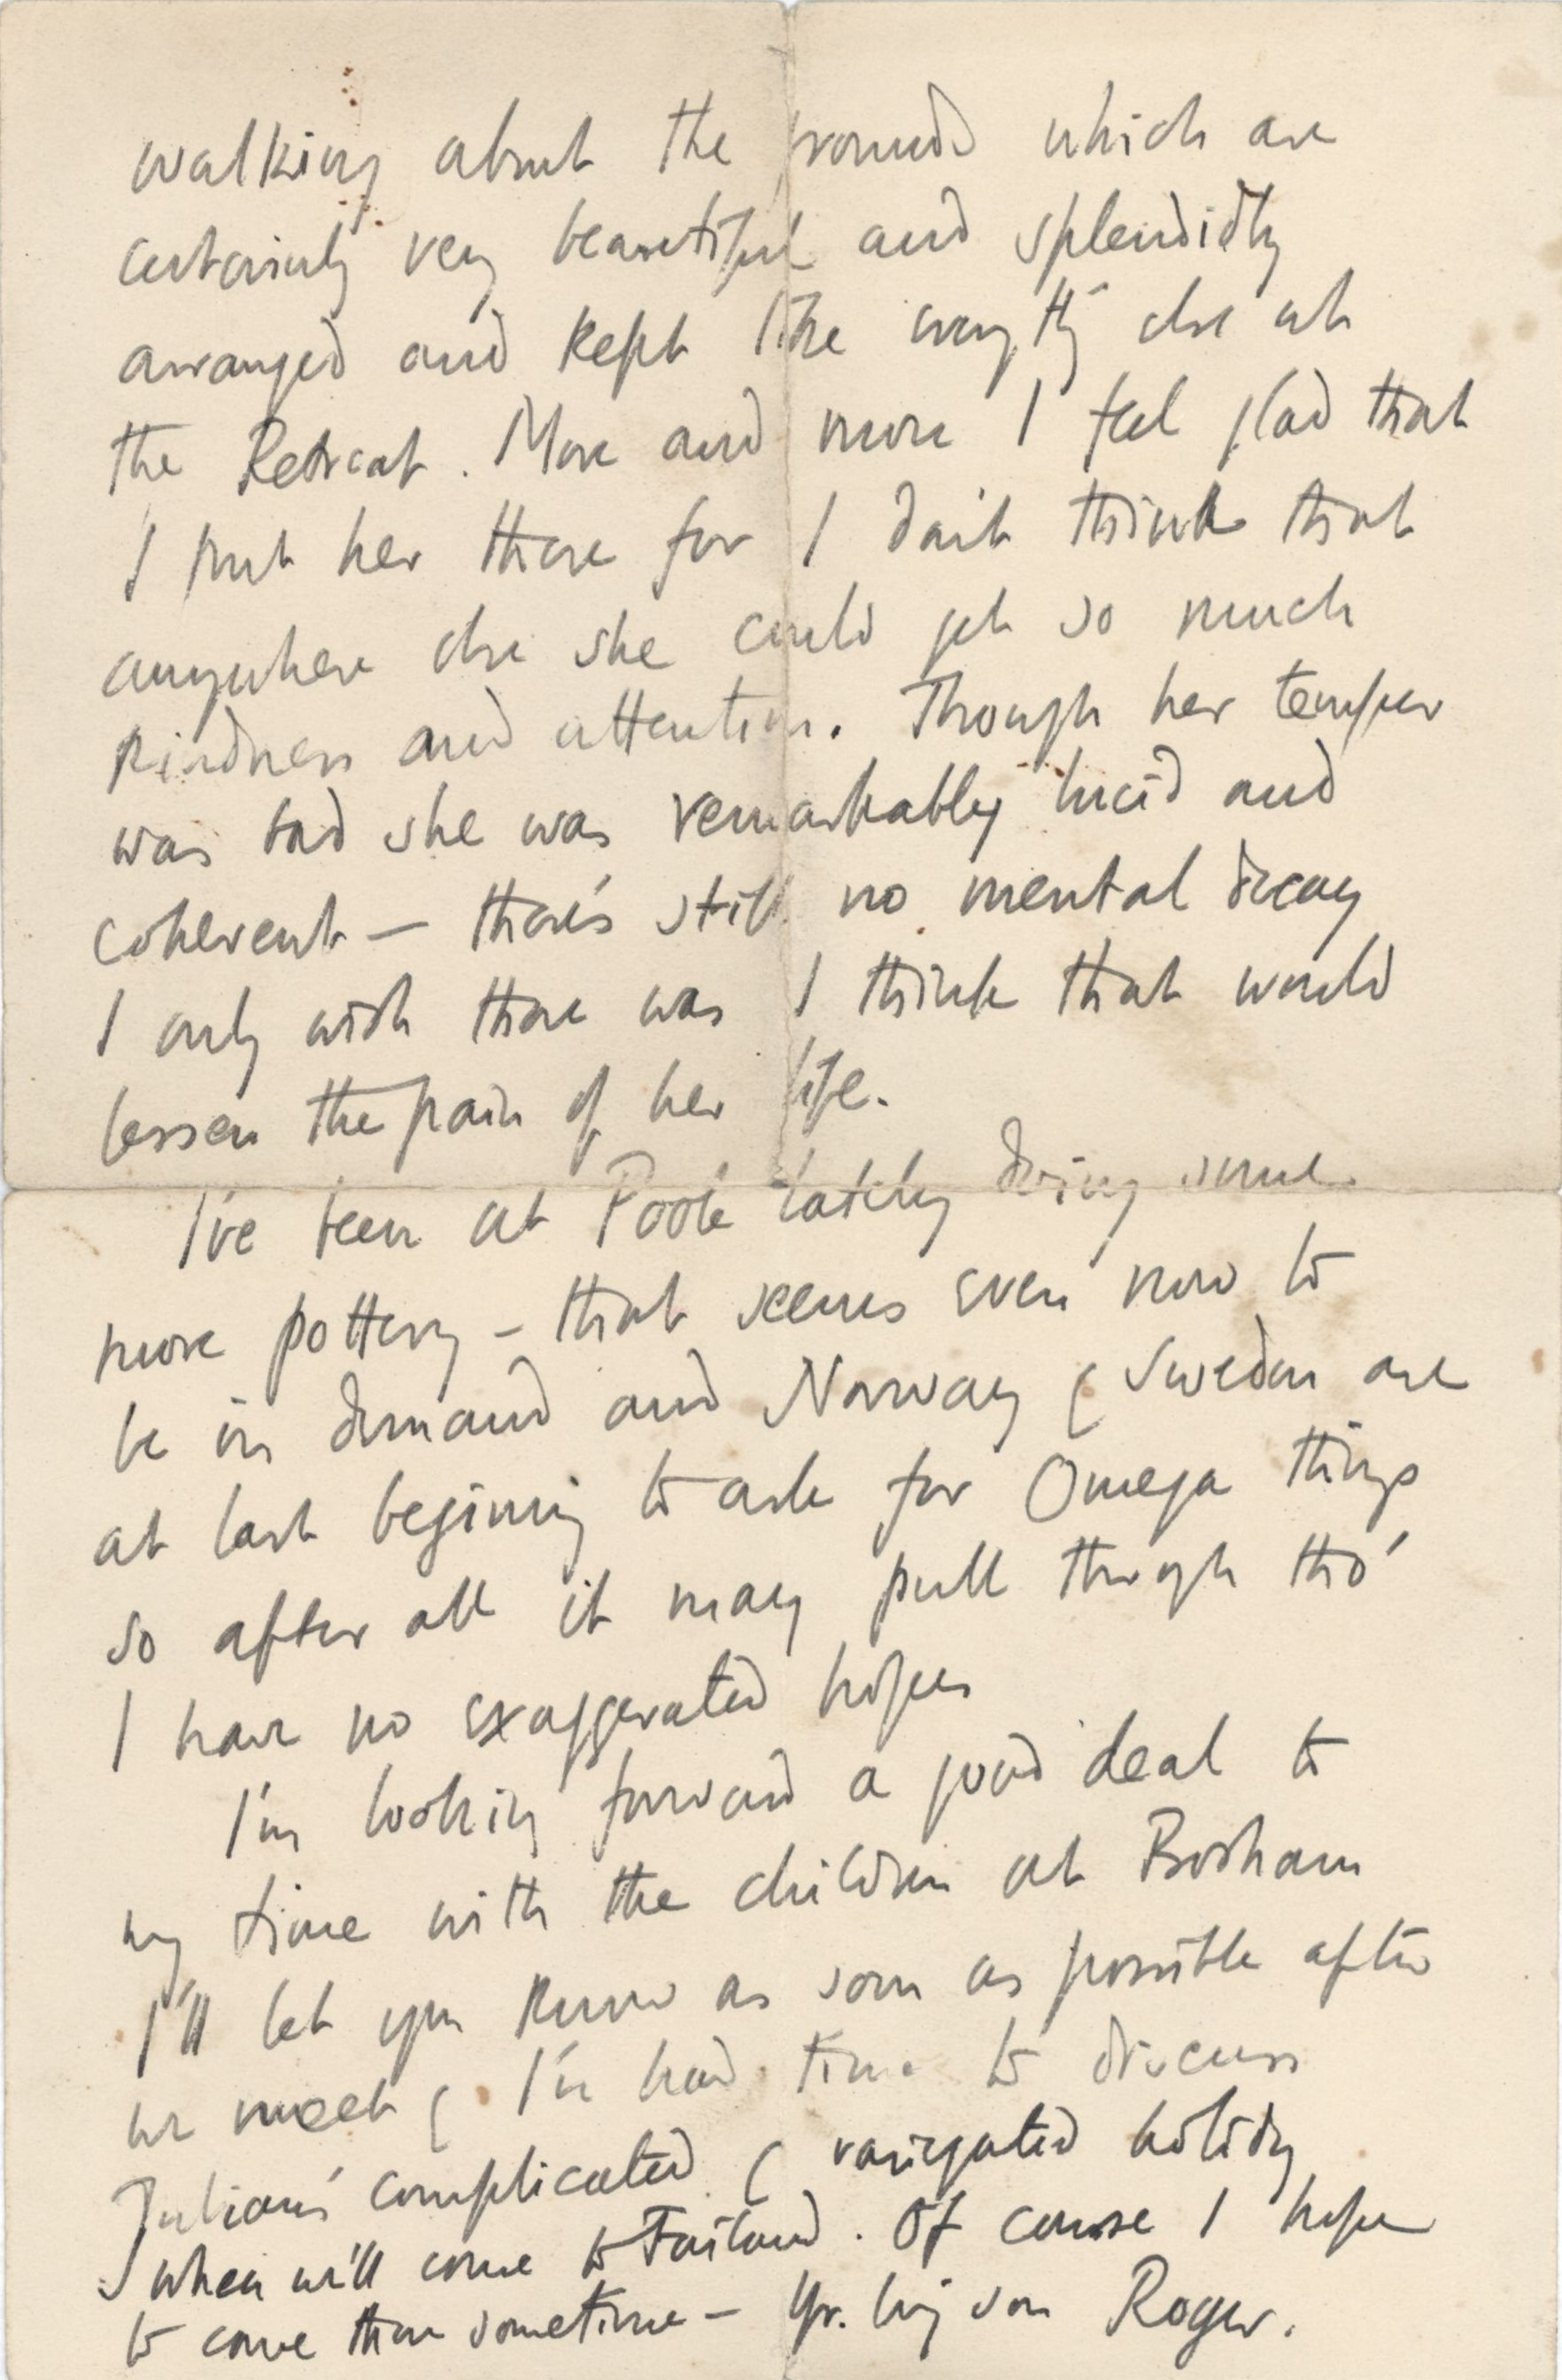 Letter from Roger Fry to his mother, 21 June 1916, describing a visit to see Helen. [REF/3/58/38]